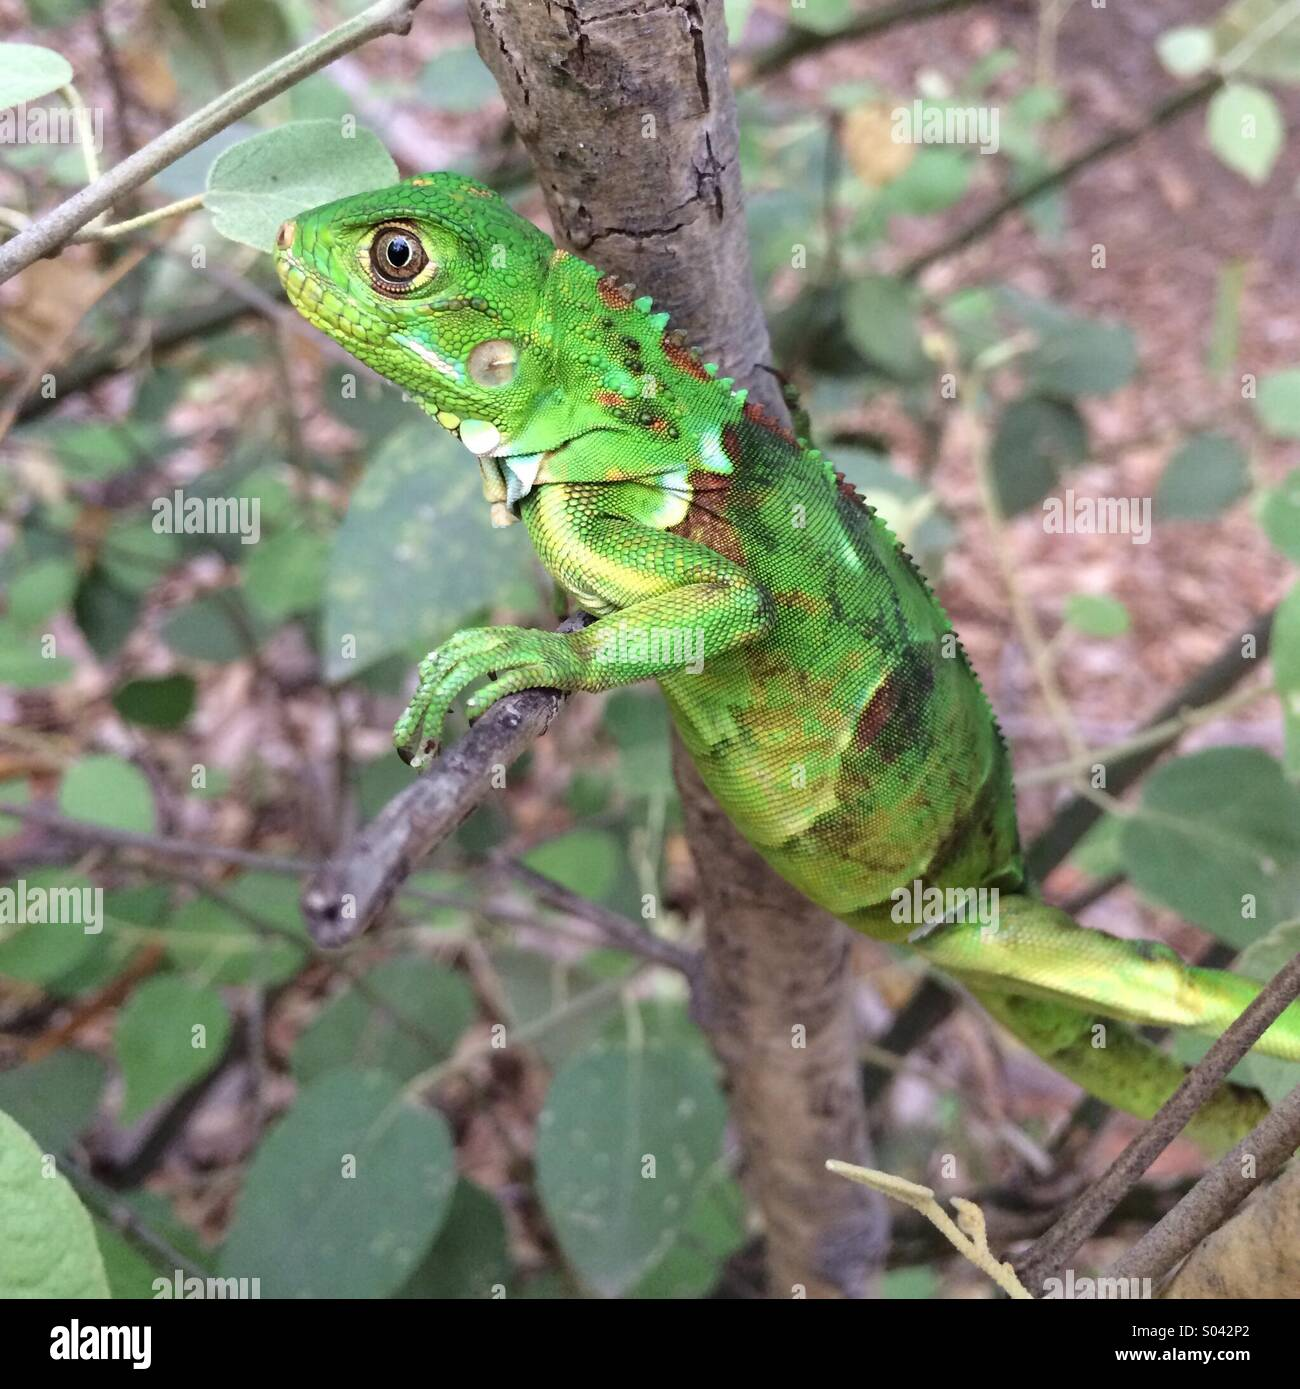 Green Iguana, climbing in small tree, Chaparri Reserve, Peru Stock Photo